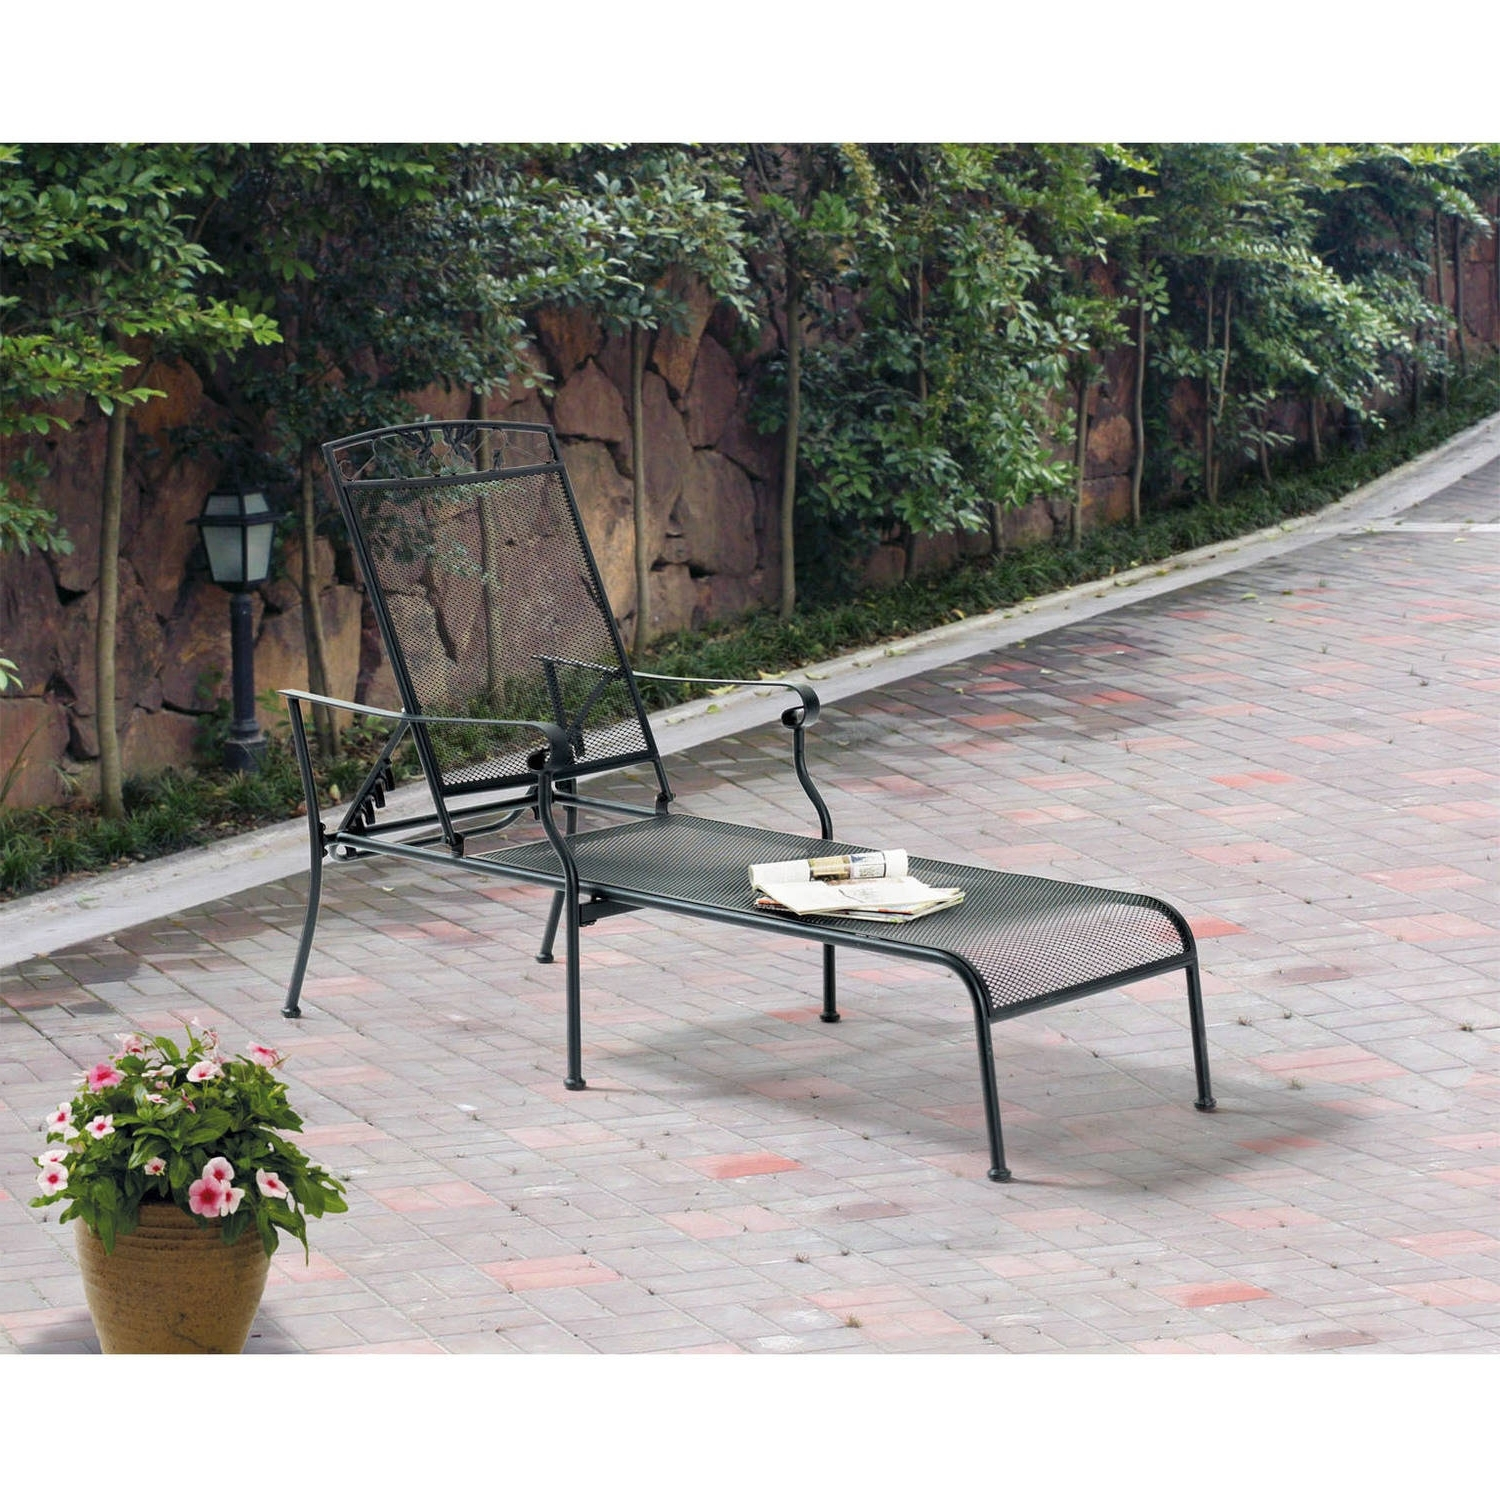 Wrought Iron Outdoor Chaise Lounge Chairs Regarding Most Current Mainstays Jefferson Wrought Iron Chaise Lounge, Black – Walmart (View 14 of 15)